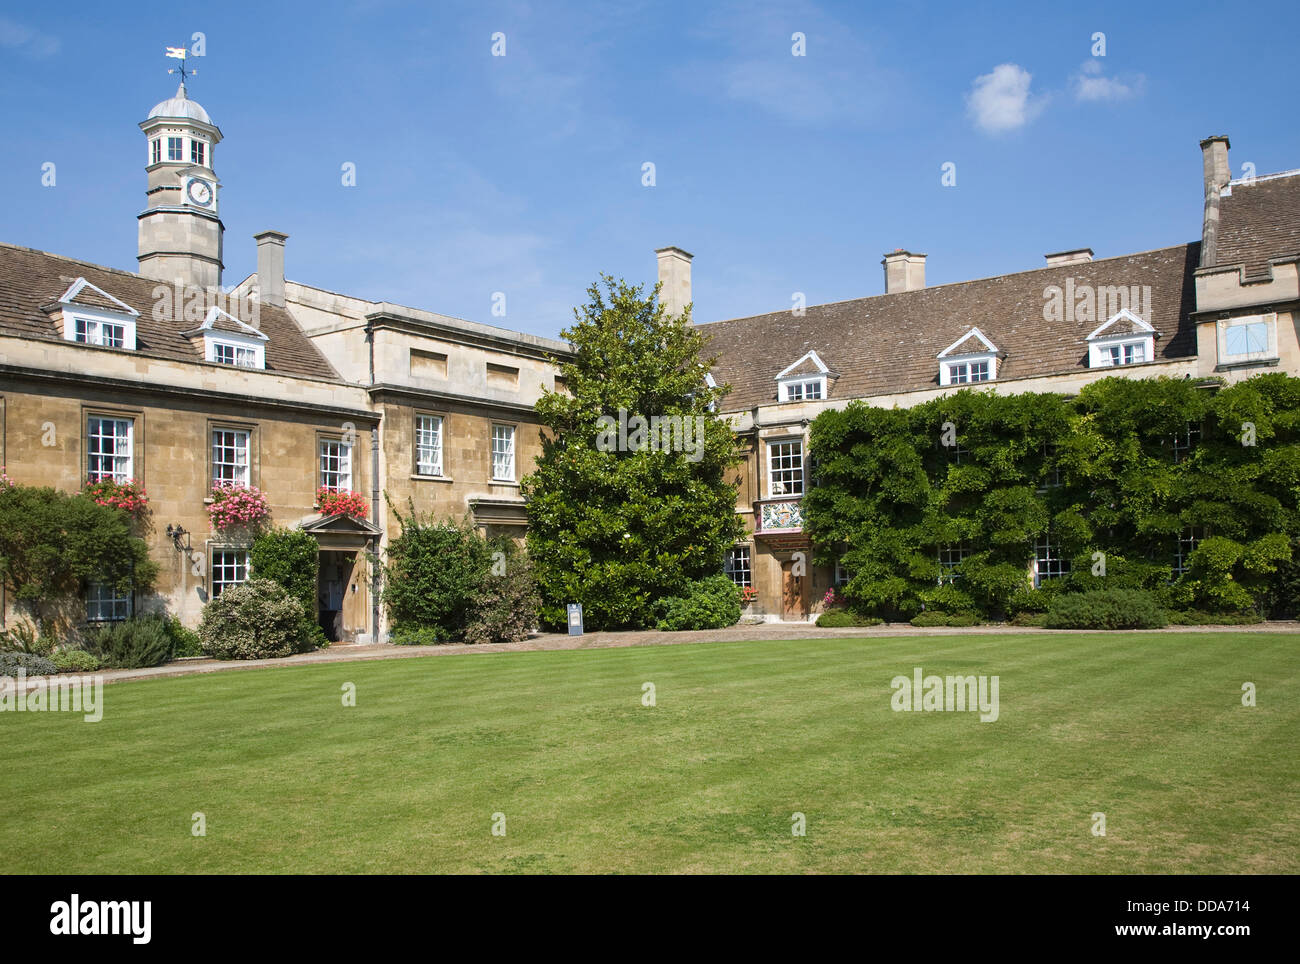 First Court building lawn Christ's College University of Cambridge England - Stock Image